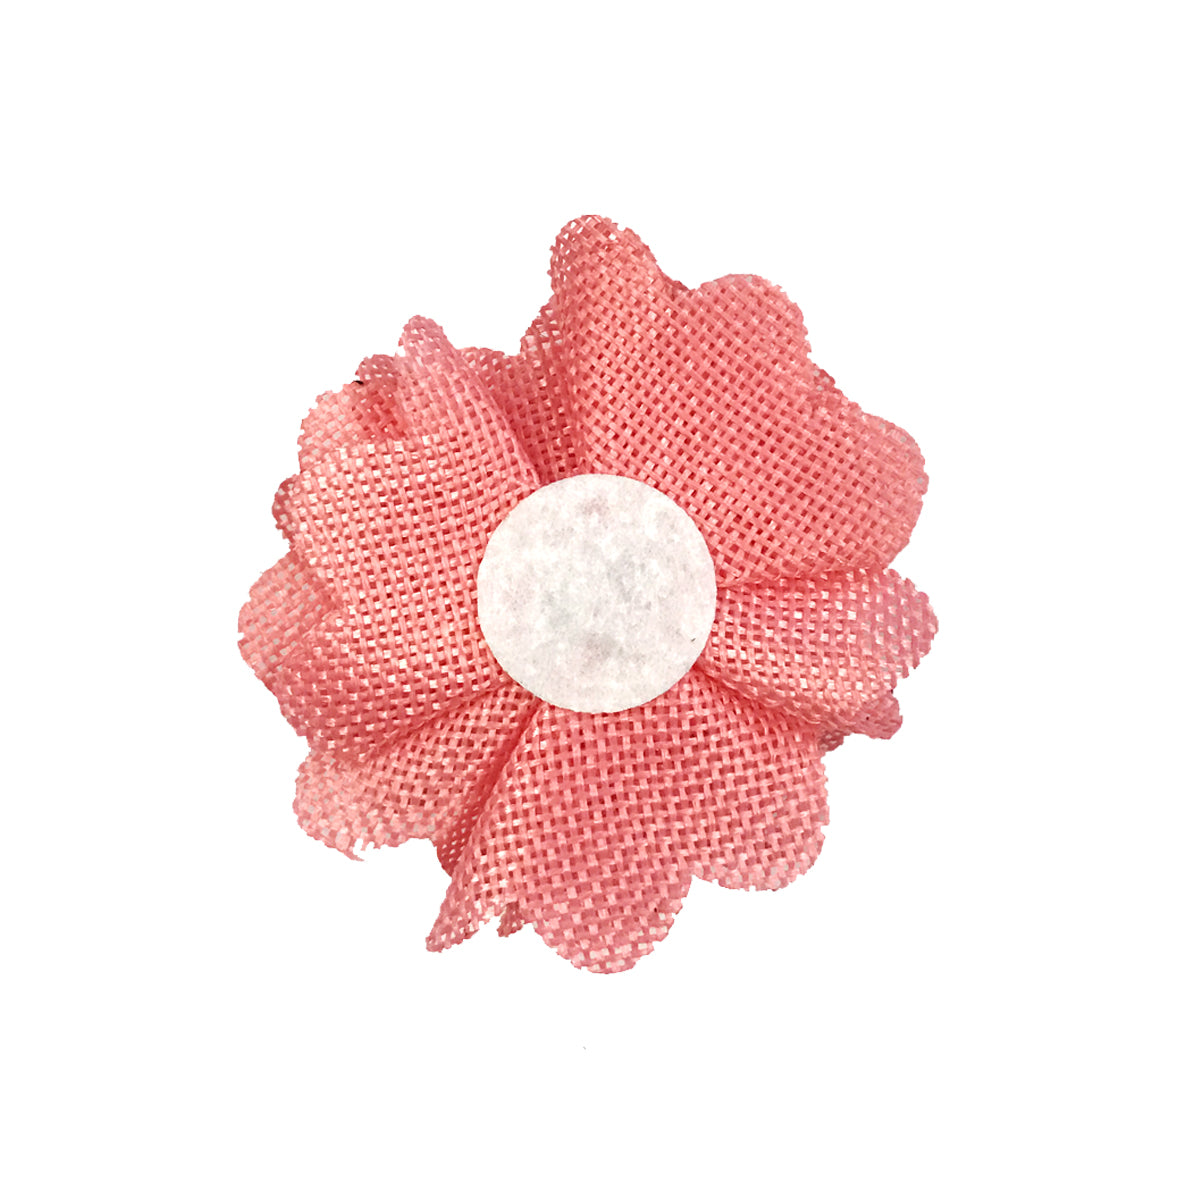 Wrapables Shabby Chic Burlap Rose Flower 3 Inch Diameter (Set of 12)